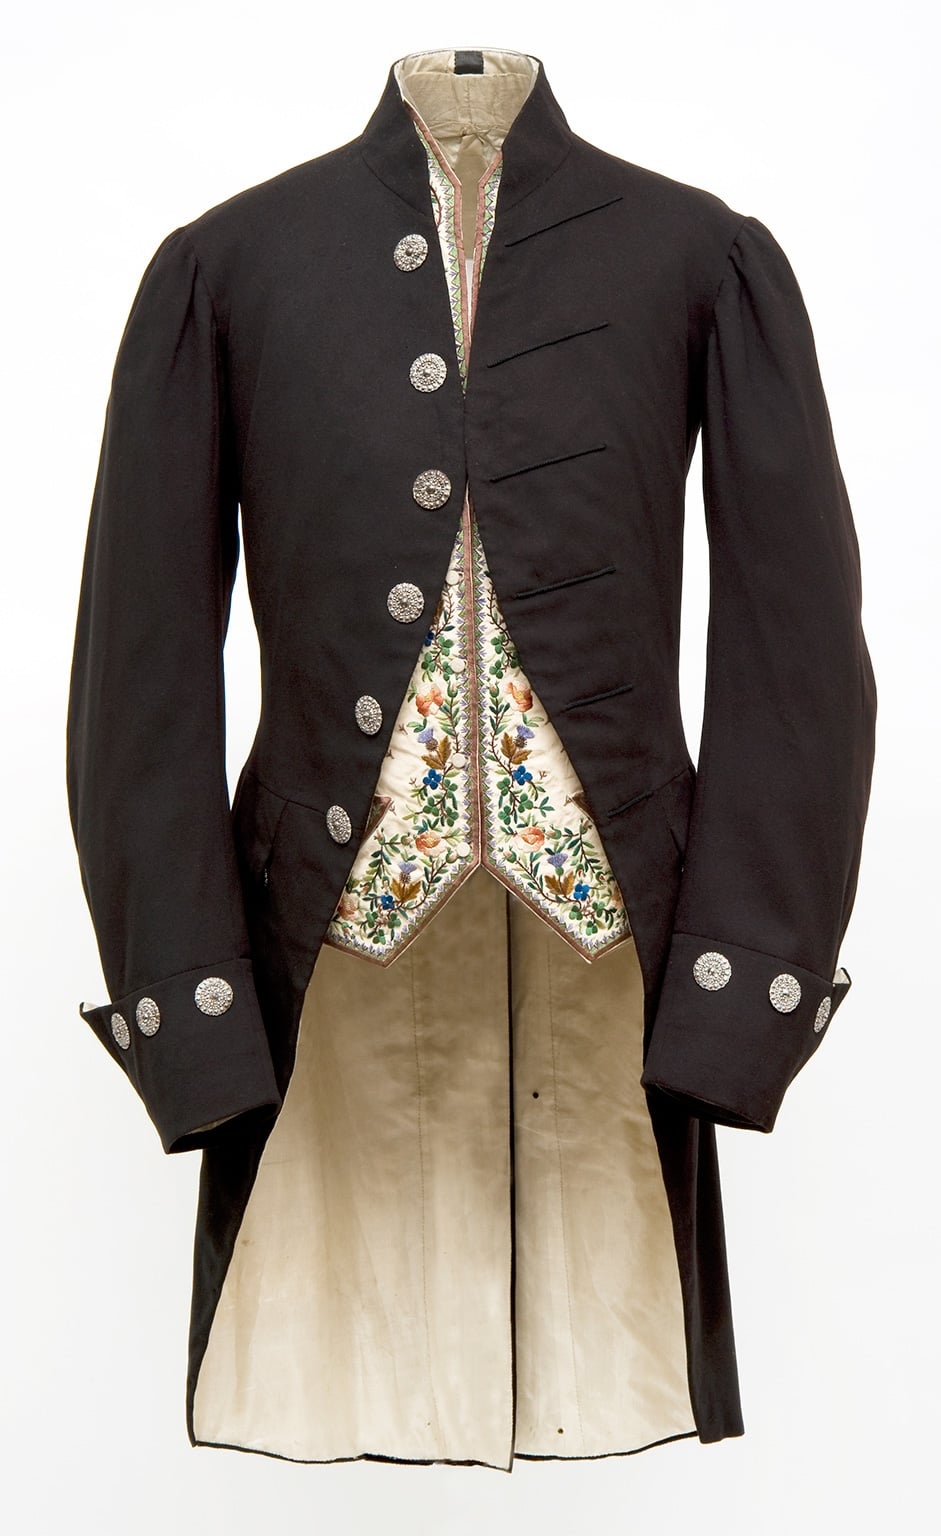 Court suit, 1867, by Henry Poole and Co., worn by H E Surtees